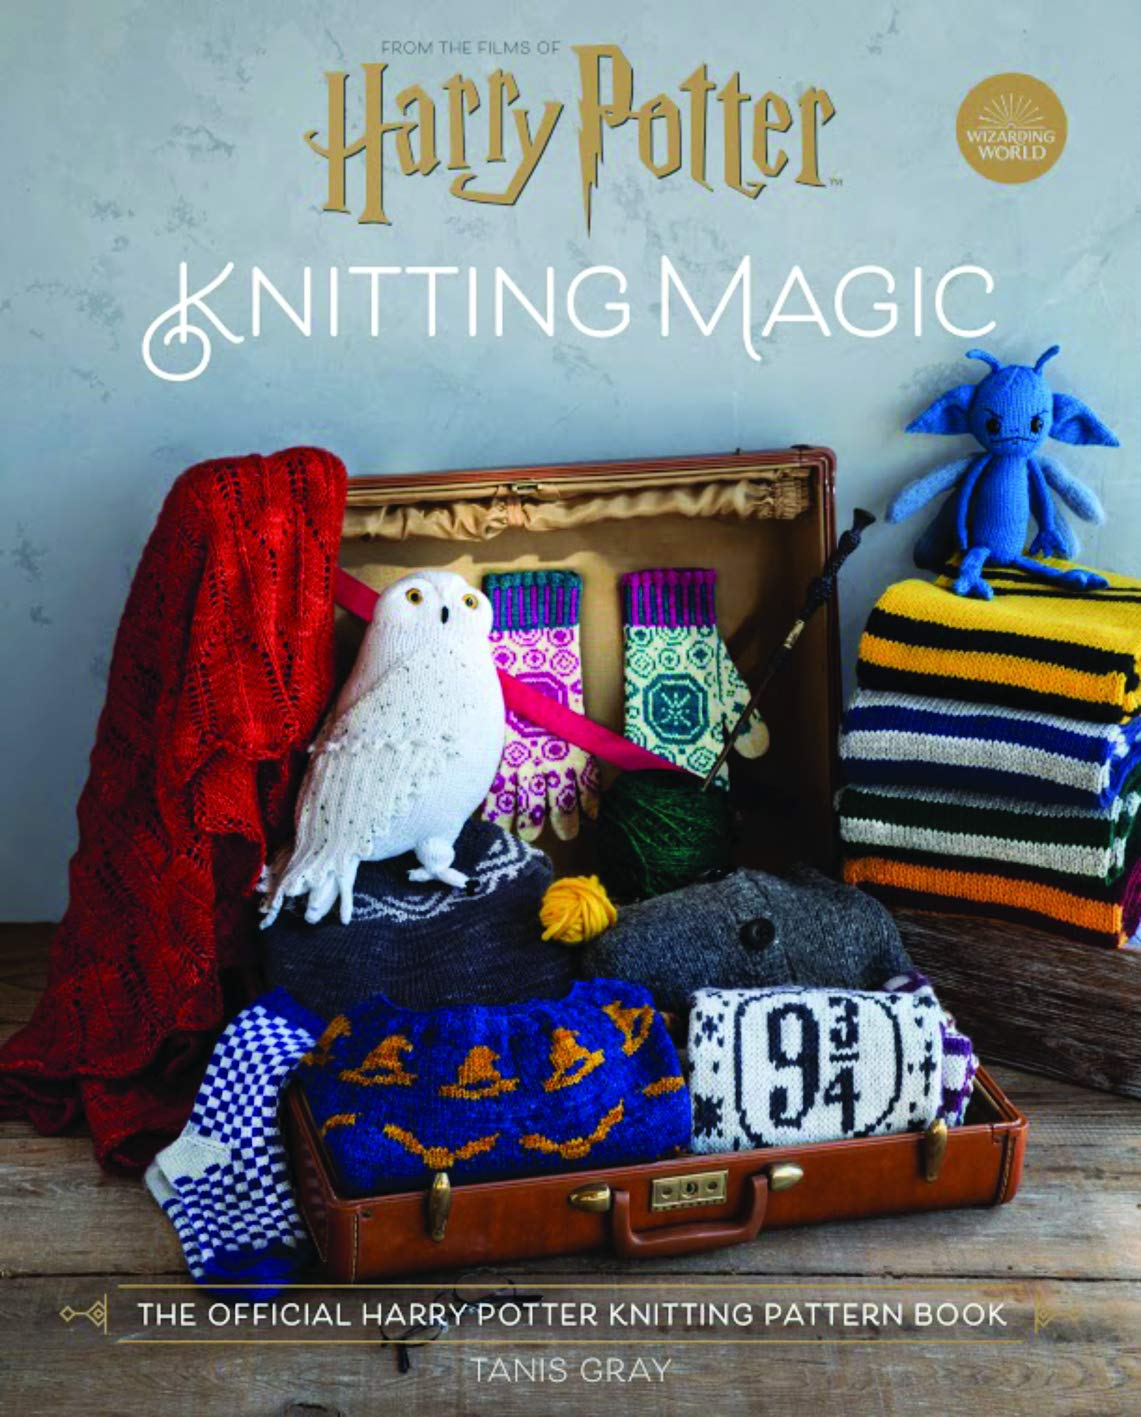 Harry Potter: Knitting Magic: The Official Harry Potter Knitting Pattern Book by Insight Editions